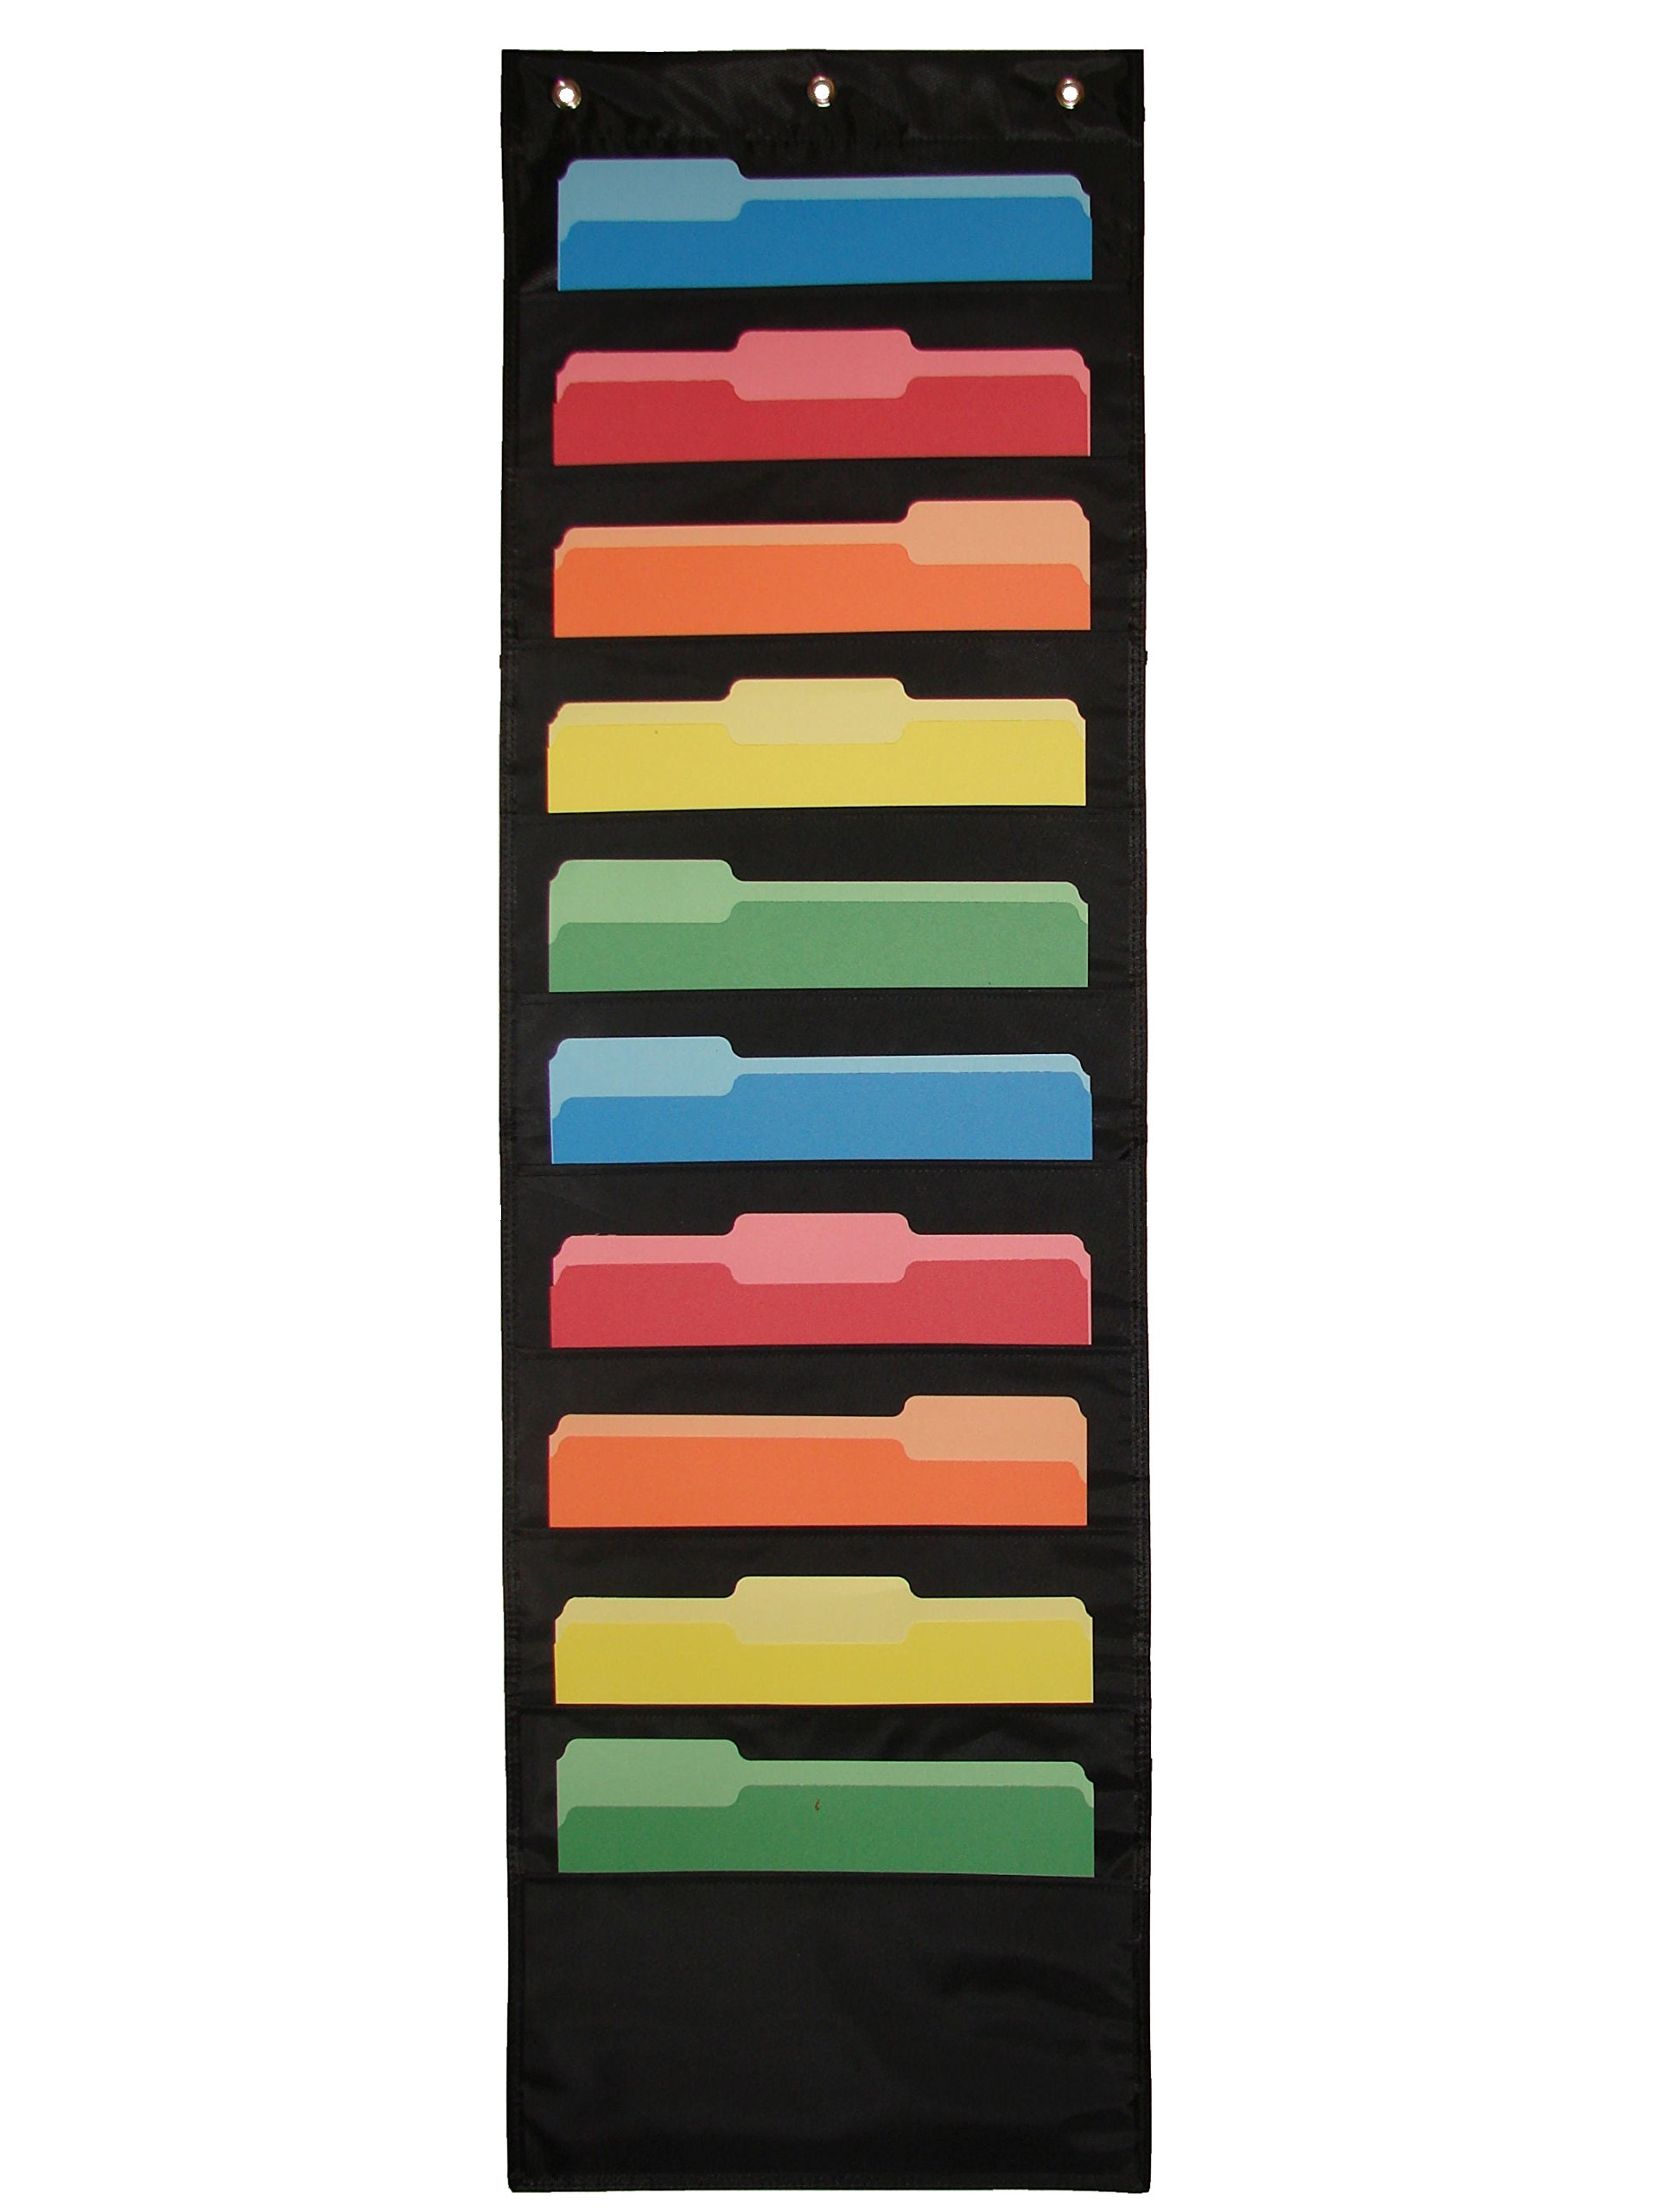 Hanging Paper Organizer & Wall File Holder - Premium Double Stitched Classroom Pocket Chart for Cubicle Office School Organization – Flat & Vertical Cascading Black 10 Pockets | Newton Y Apple by Newton Y Apple (Image #8)